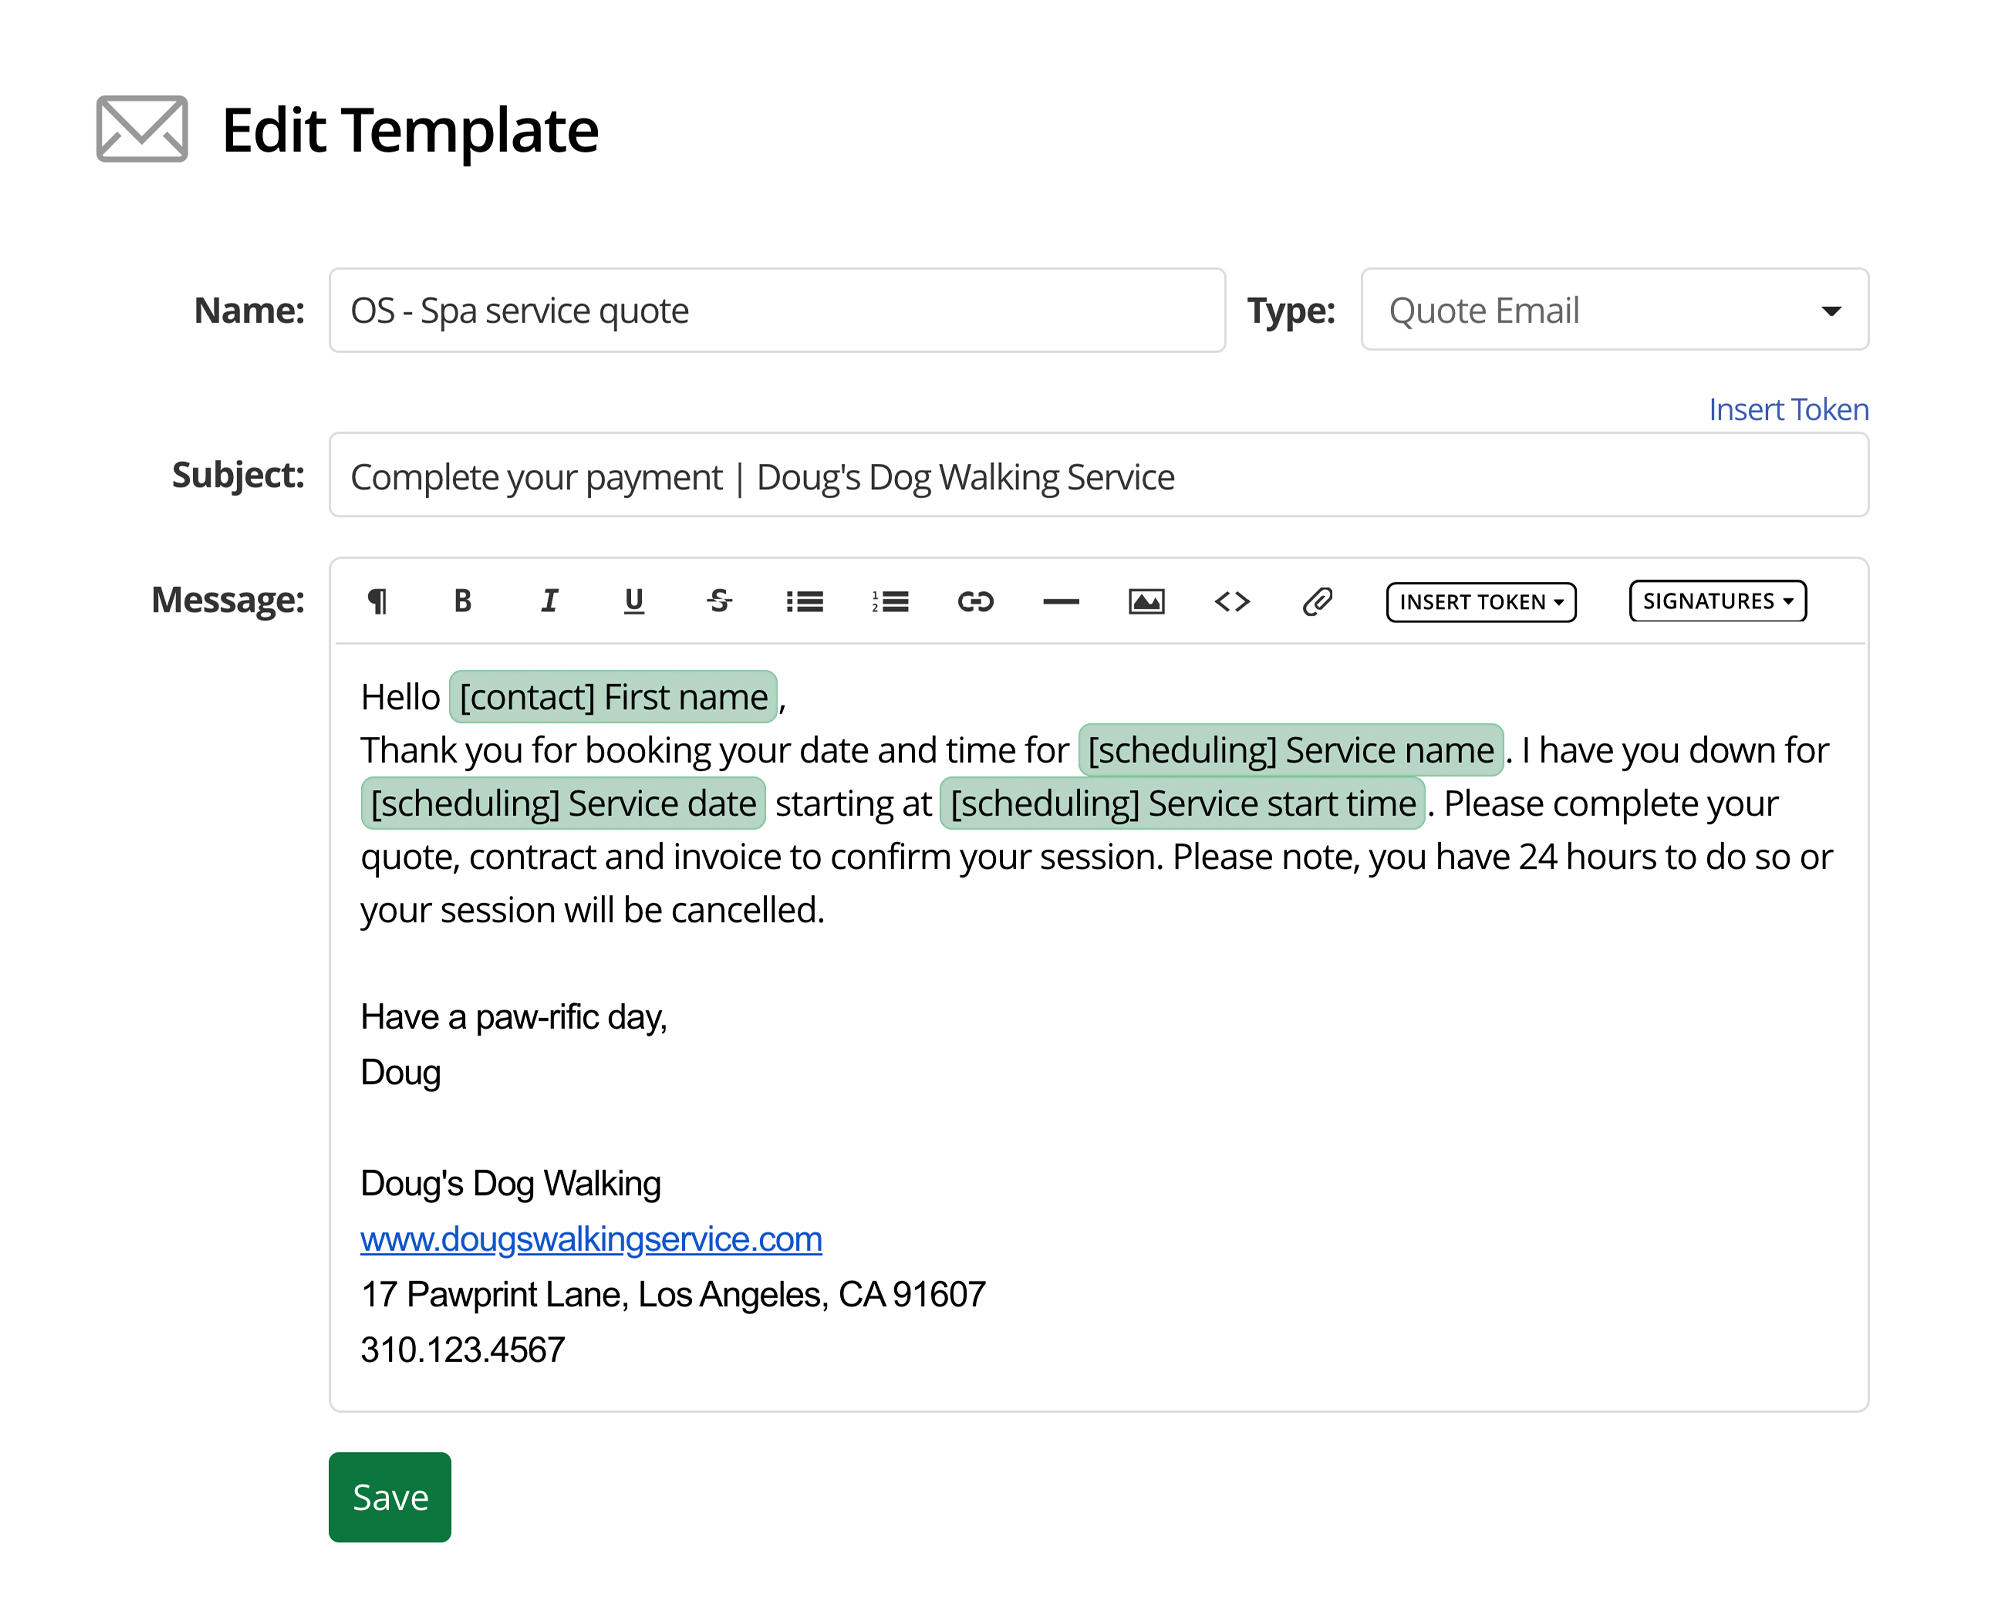 17hats Feature Email Templates